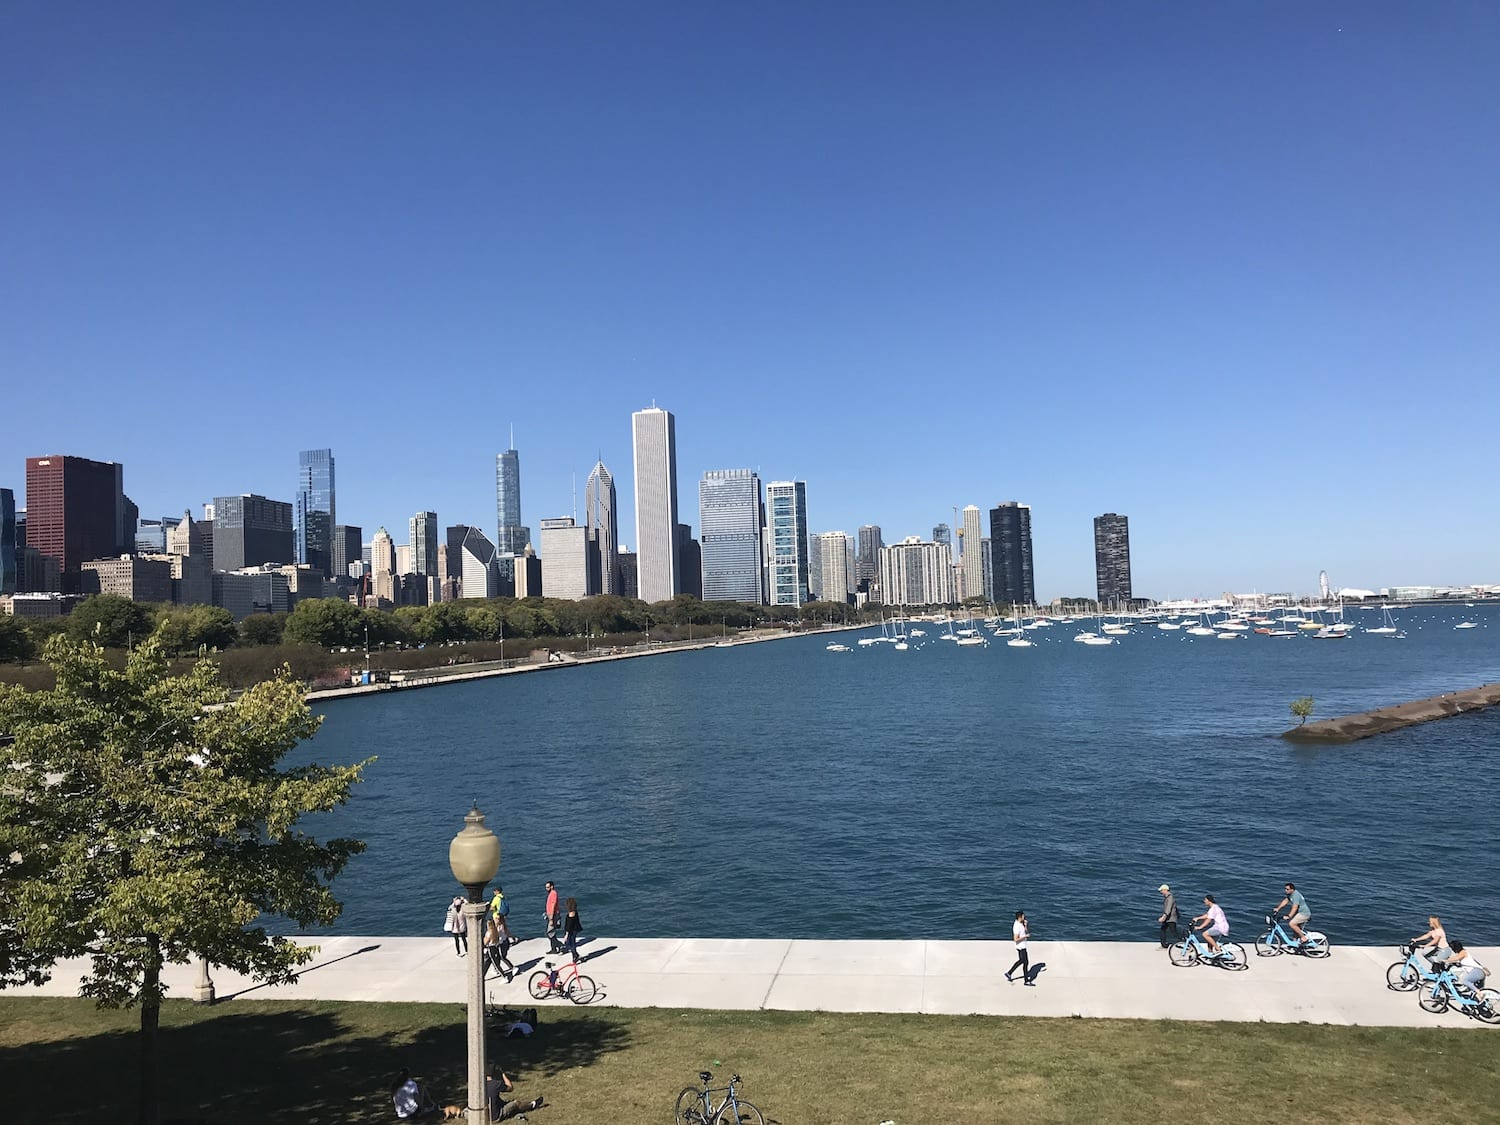 View of Lake Michigan from Shedd Aquarium in Chicago, Illinois